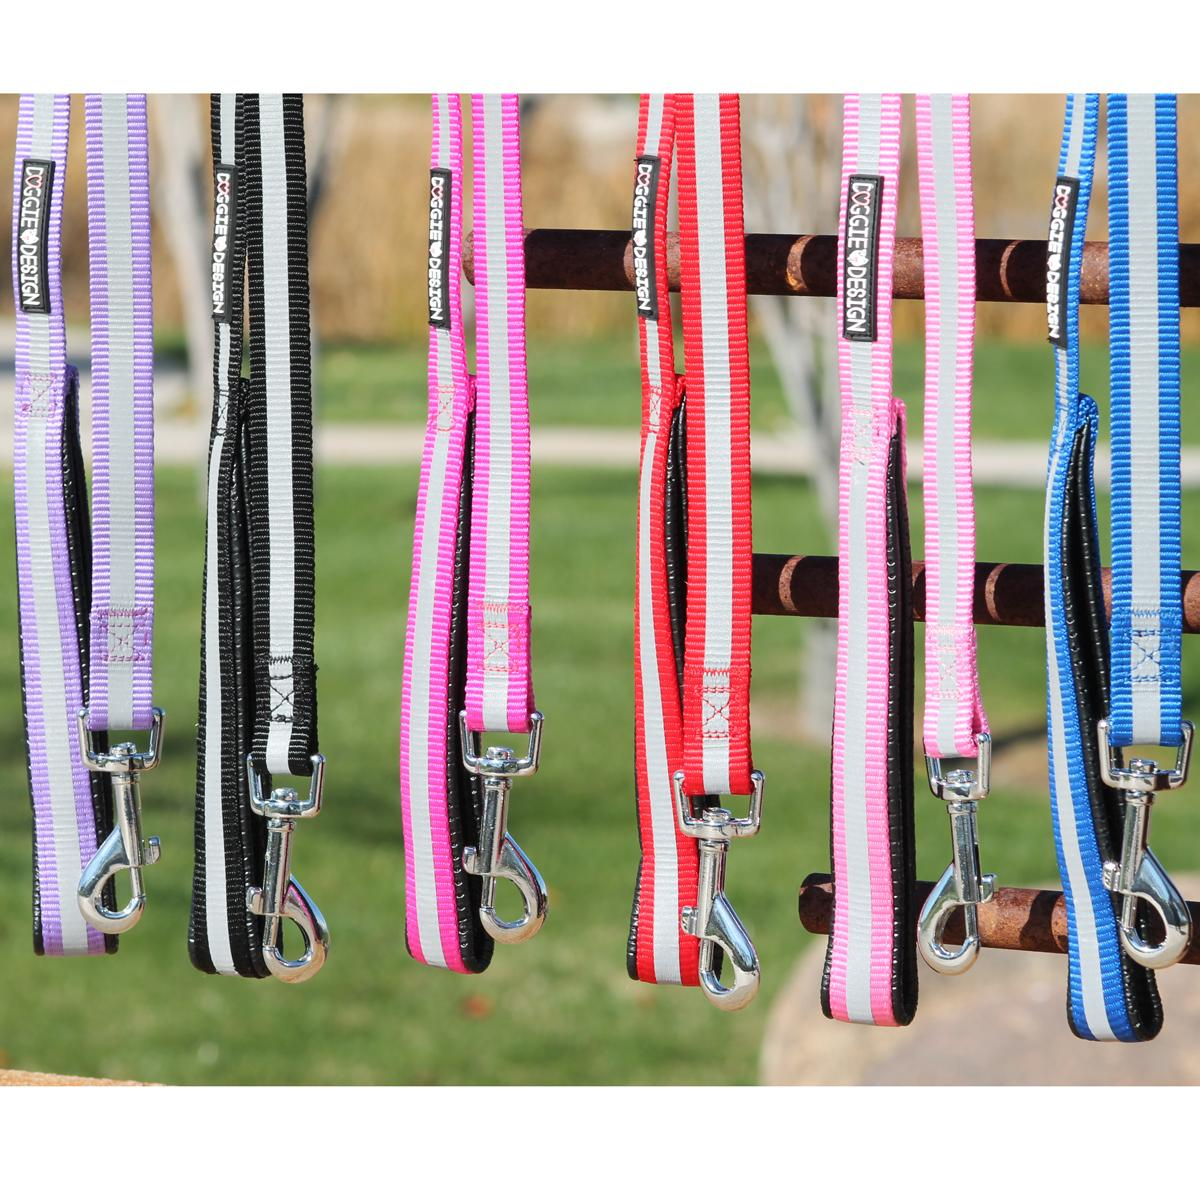 Reflective Nylon Leash with Soft Grip Handle by Doggie Design - 3/4 in. Wide x 5 ft. Long